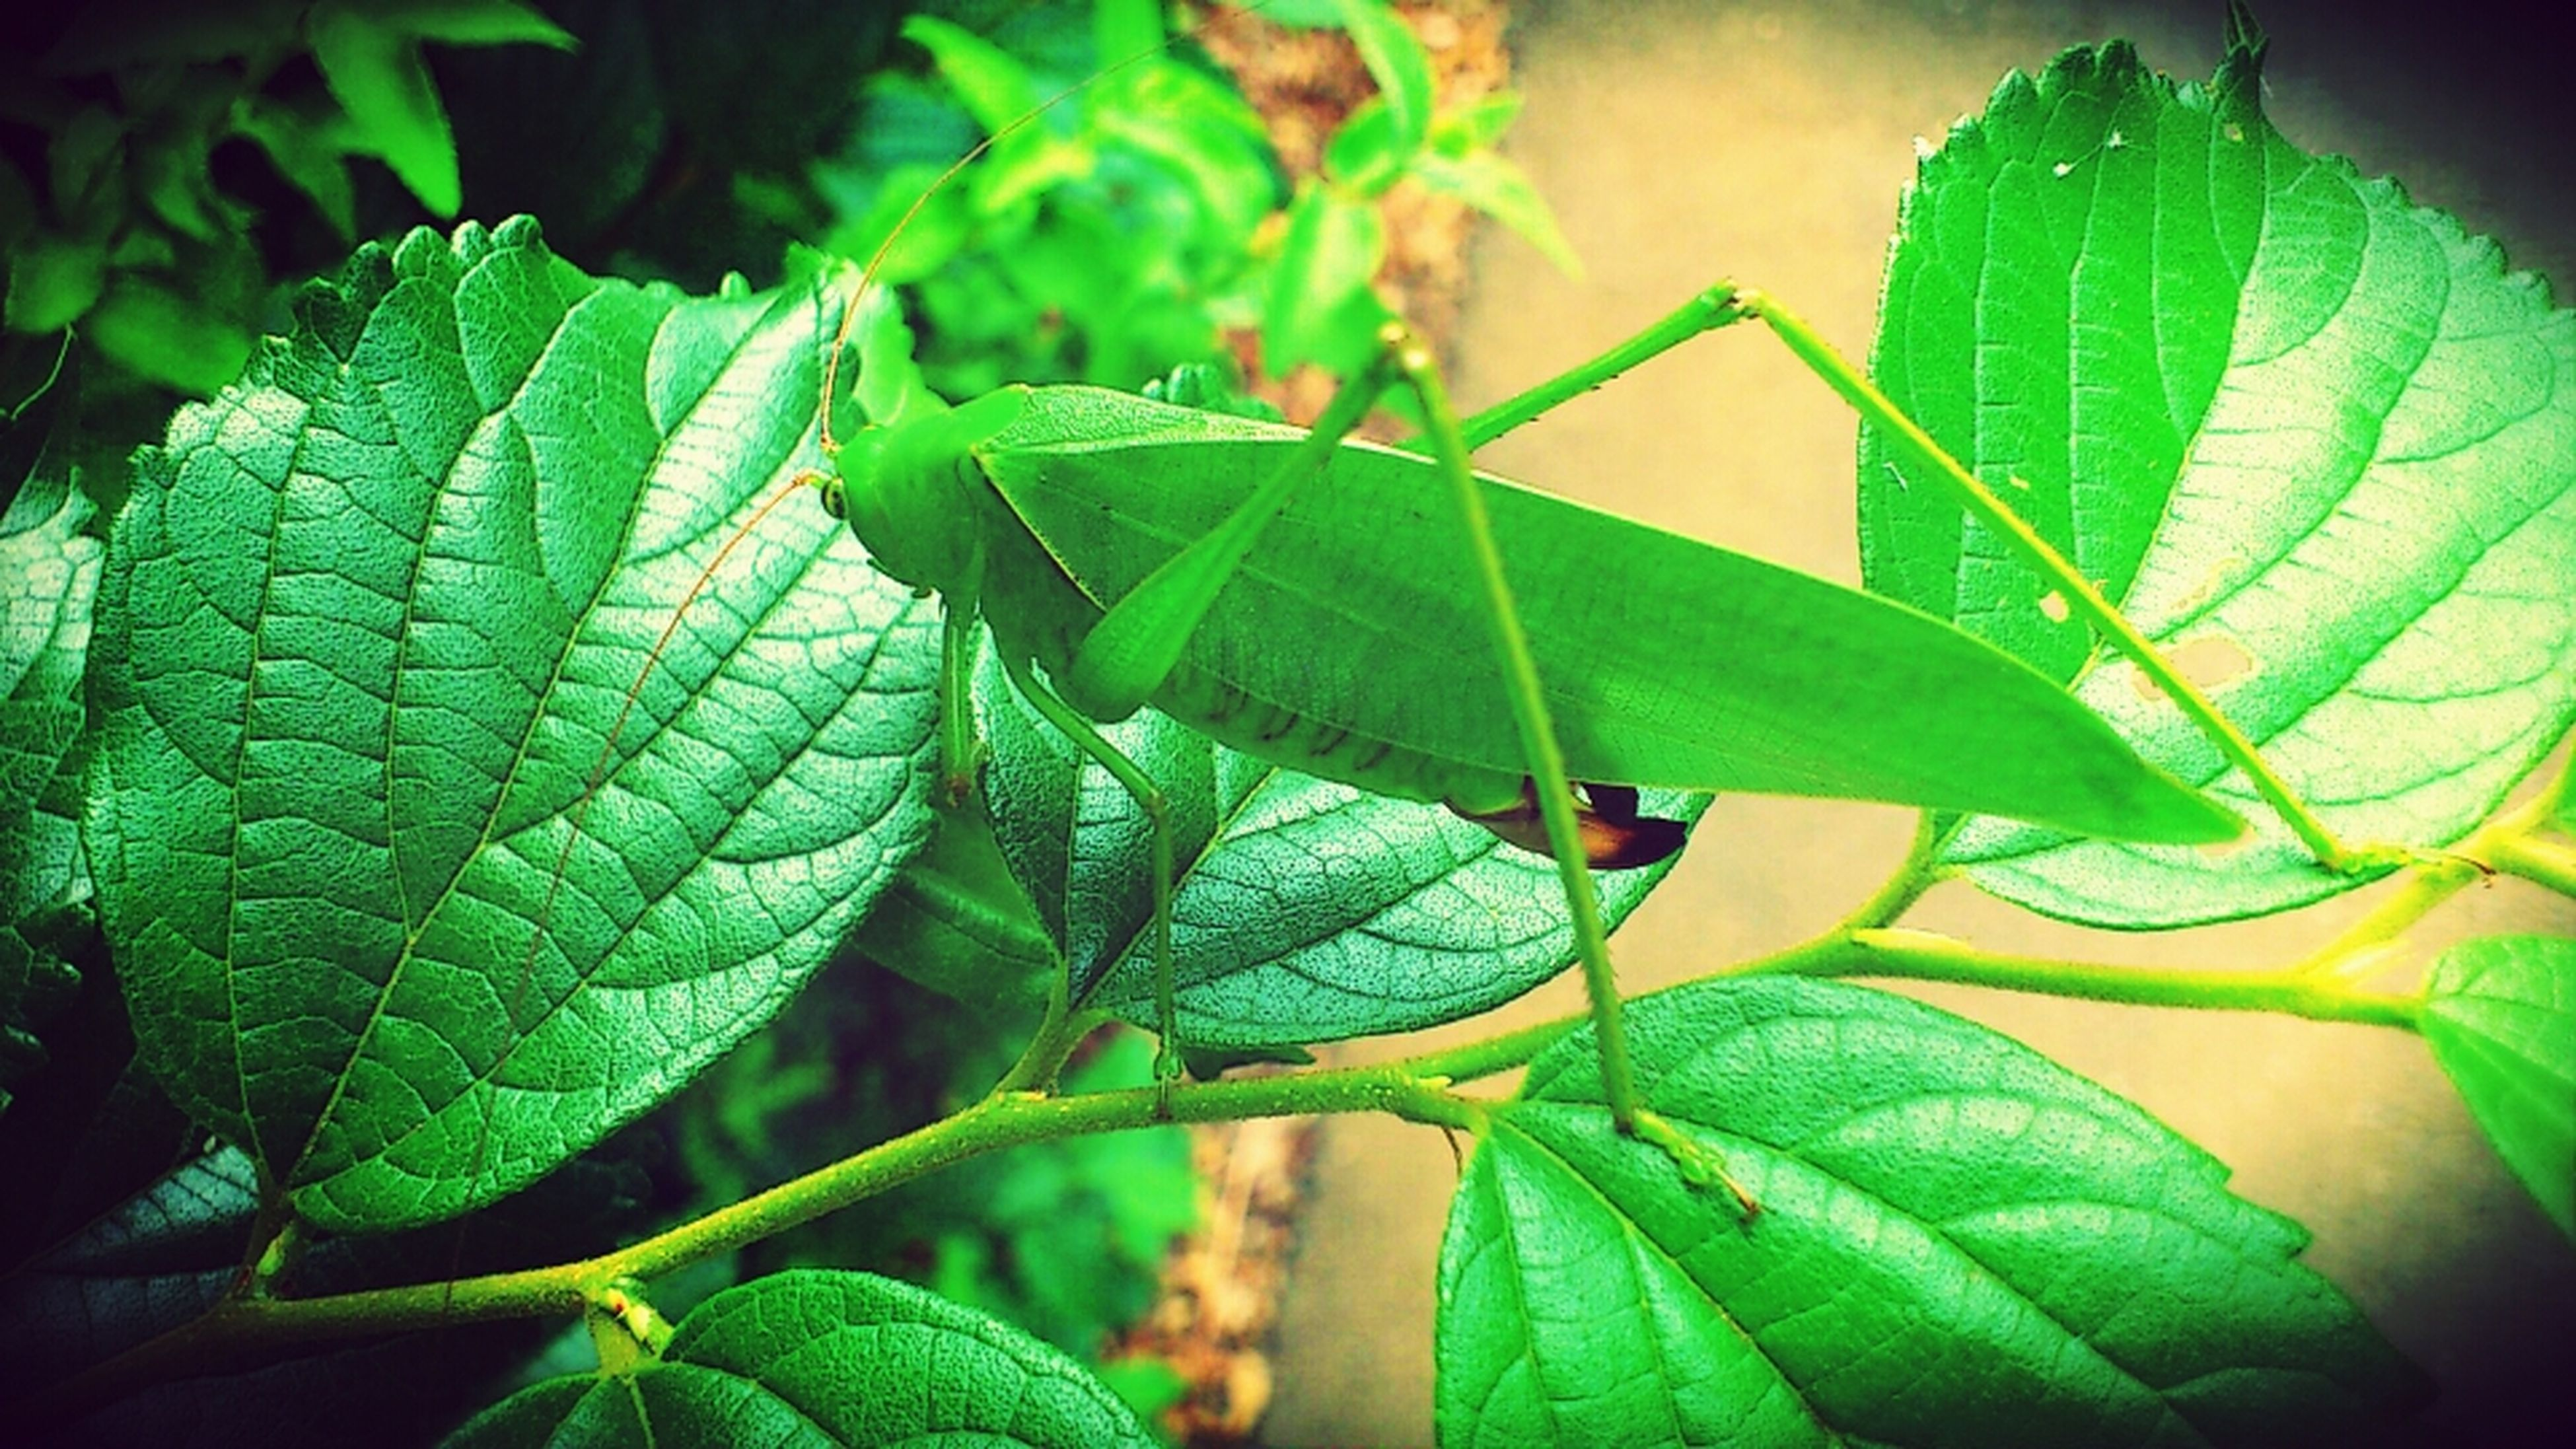 leaf, green color, leaf vein, close-up, plant, one animal, nature, leaves, animal themes, focus on foreground, wildlife, growth, animals in the wild, insect, natural pattern, green, beauty in nature, outdoors, selective focus, no people